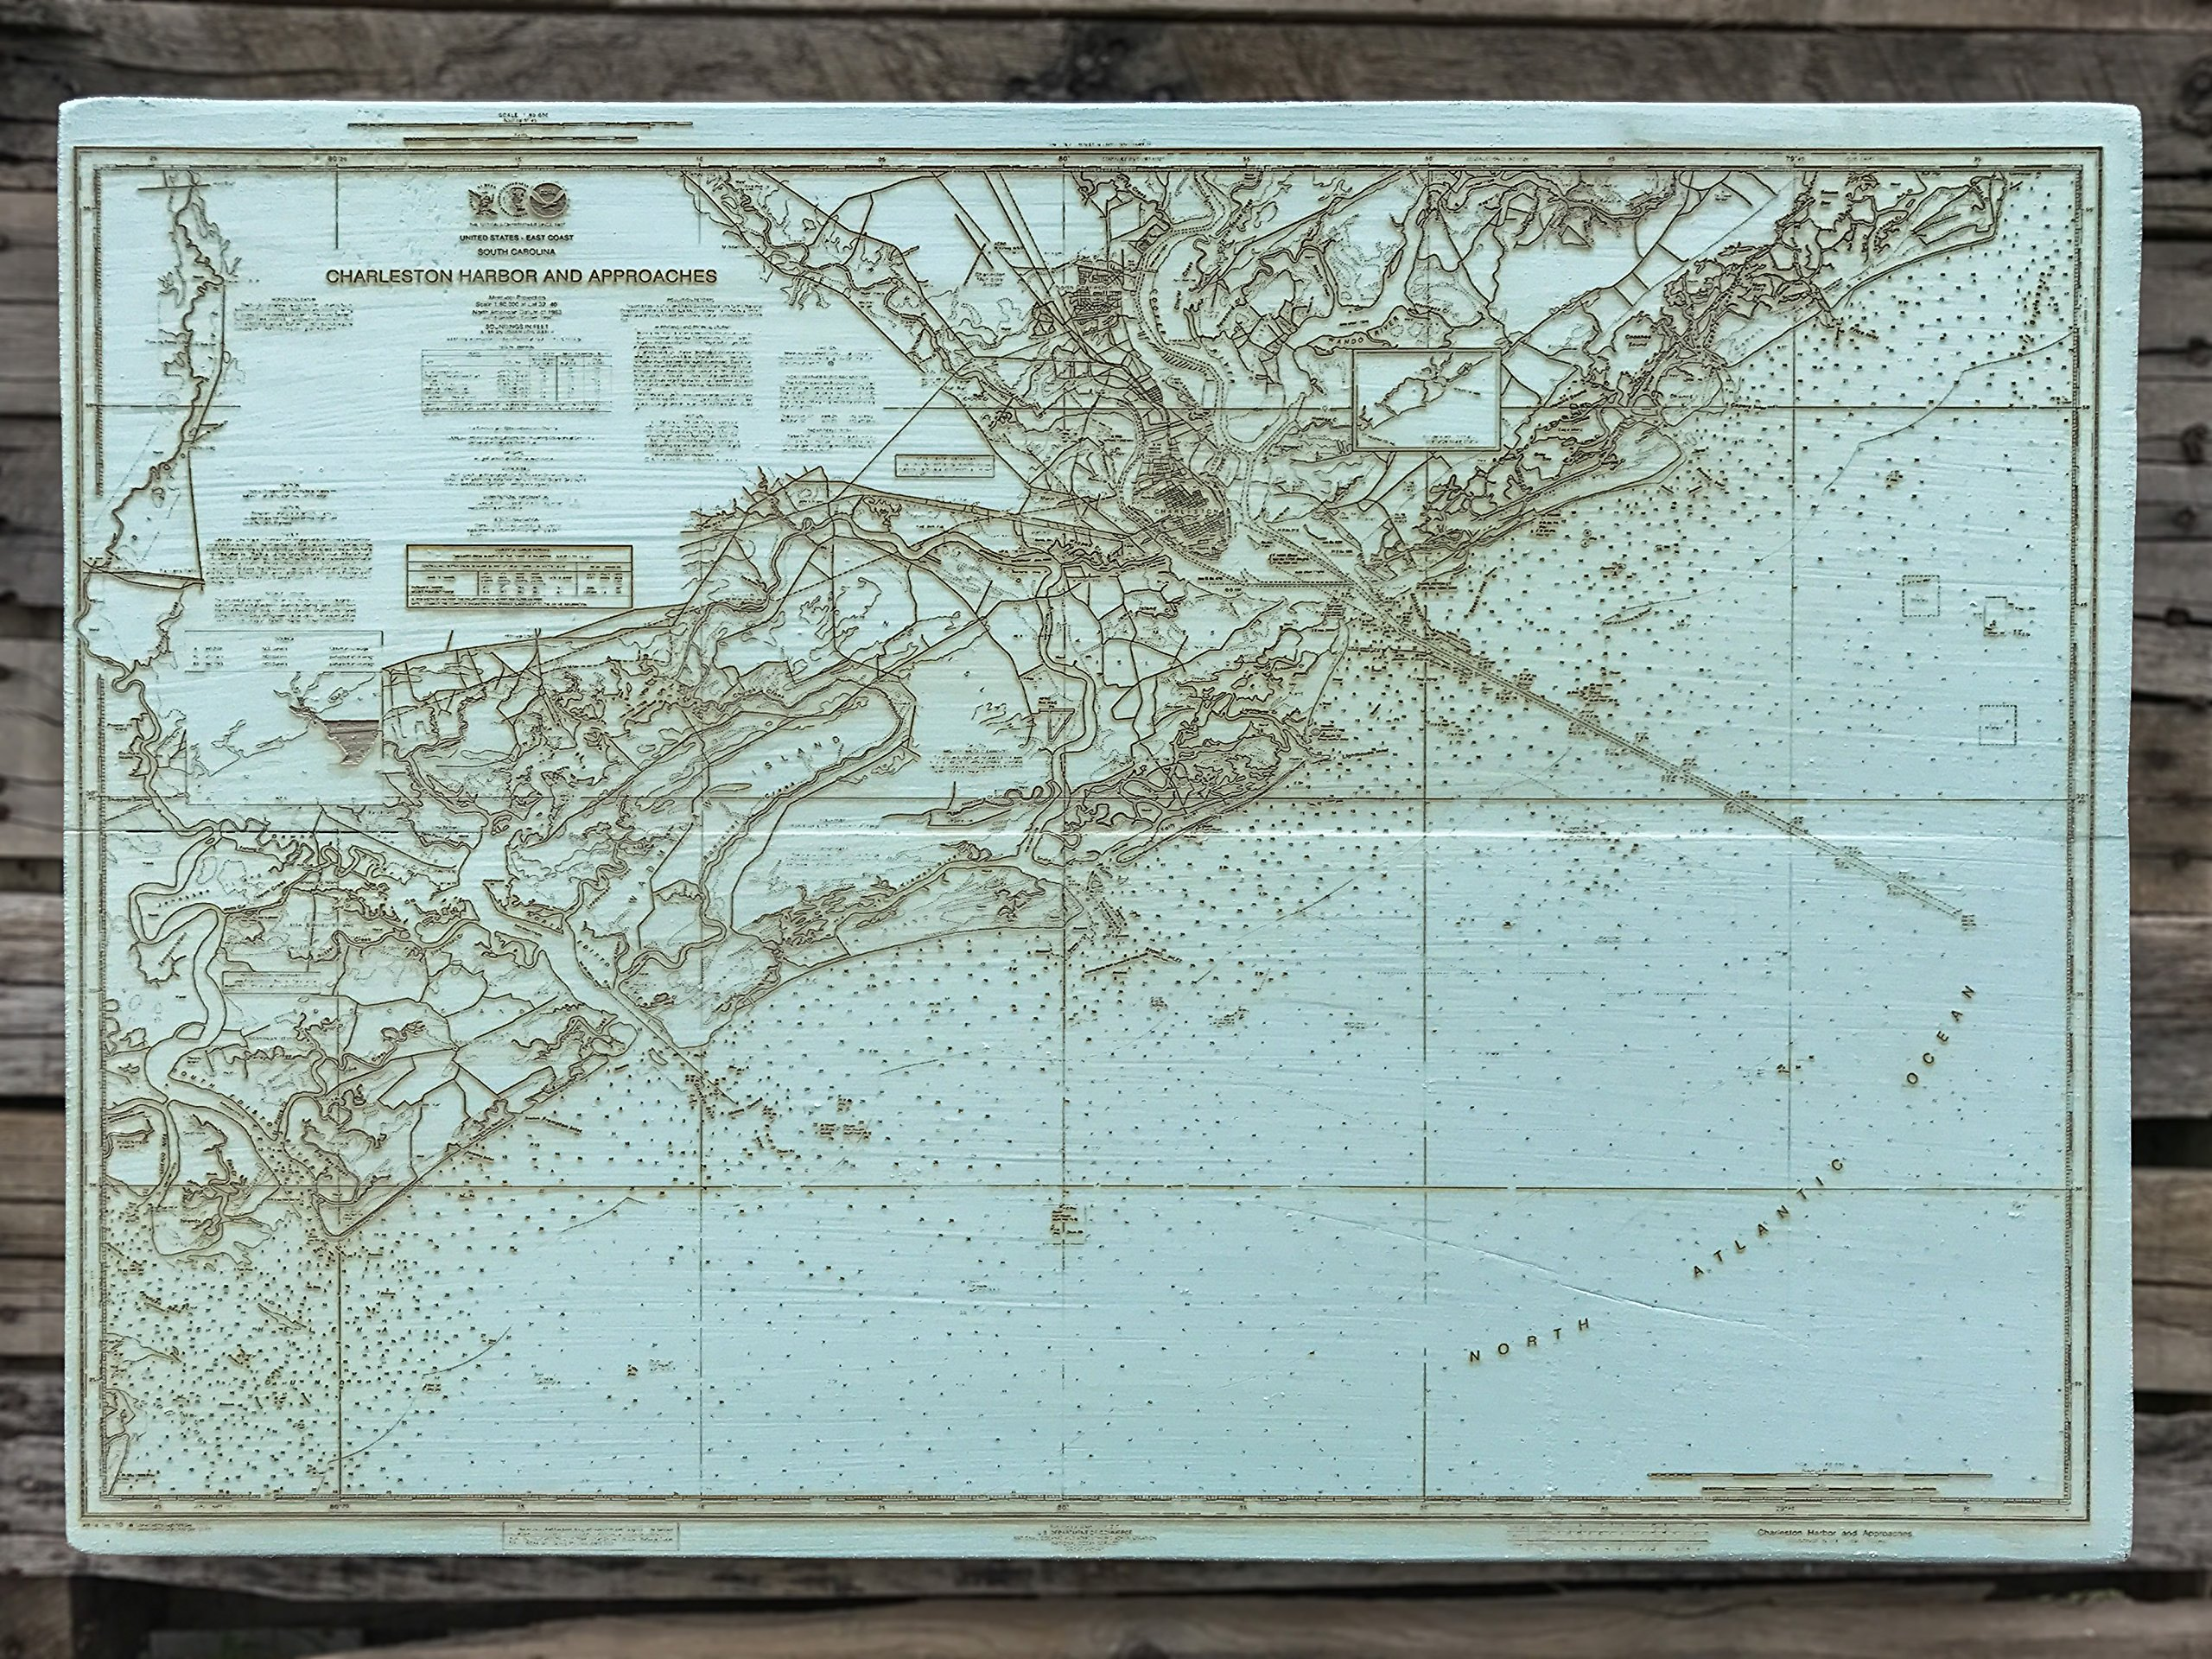 Charleston Harbor and Approaches wood engraved map by Fire & Pine